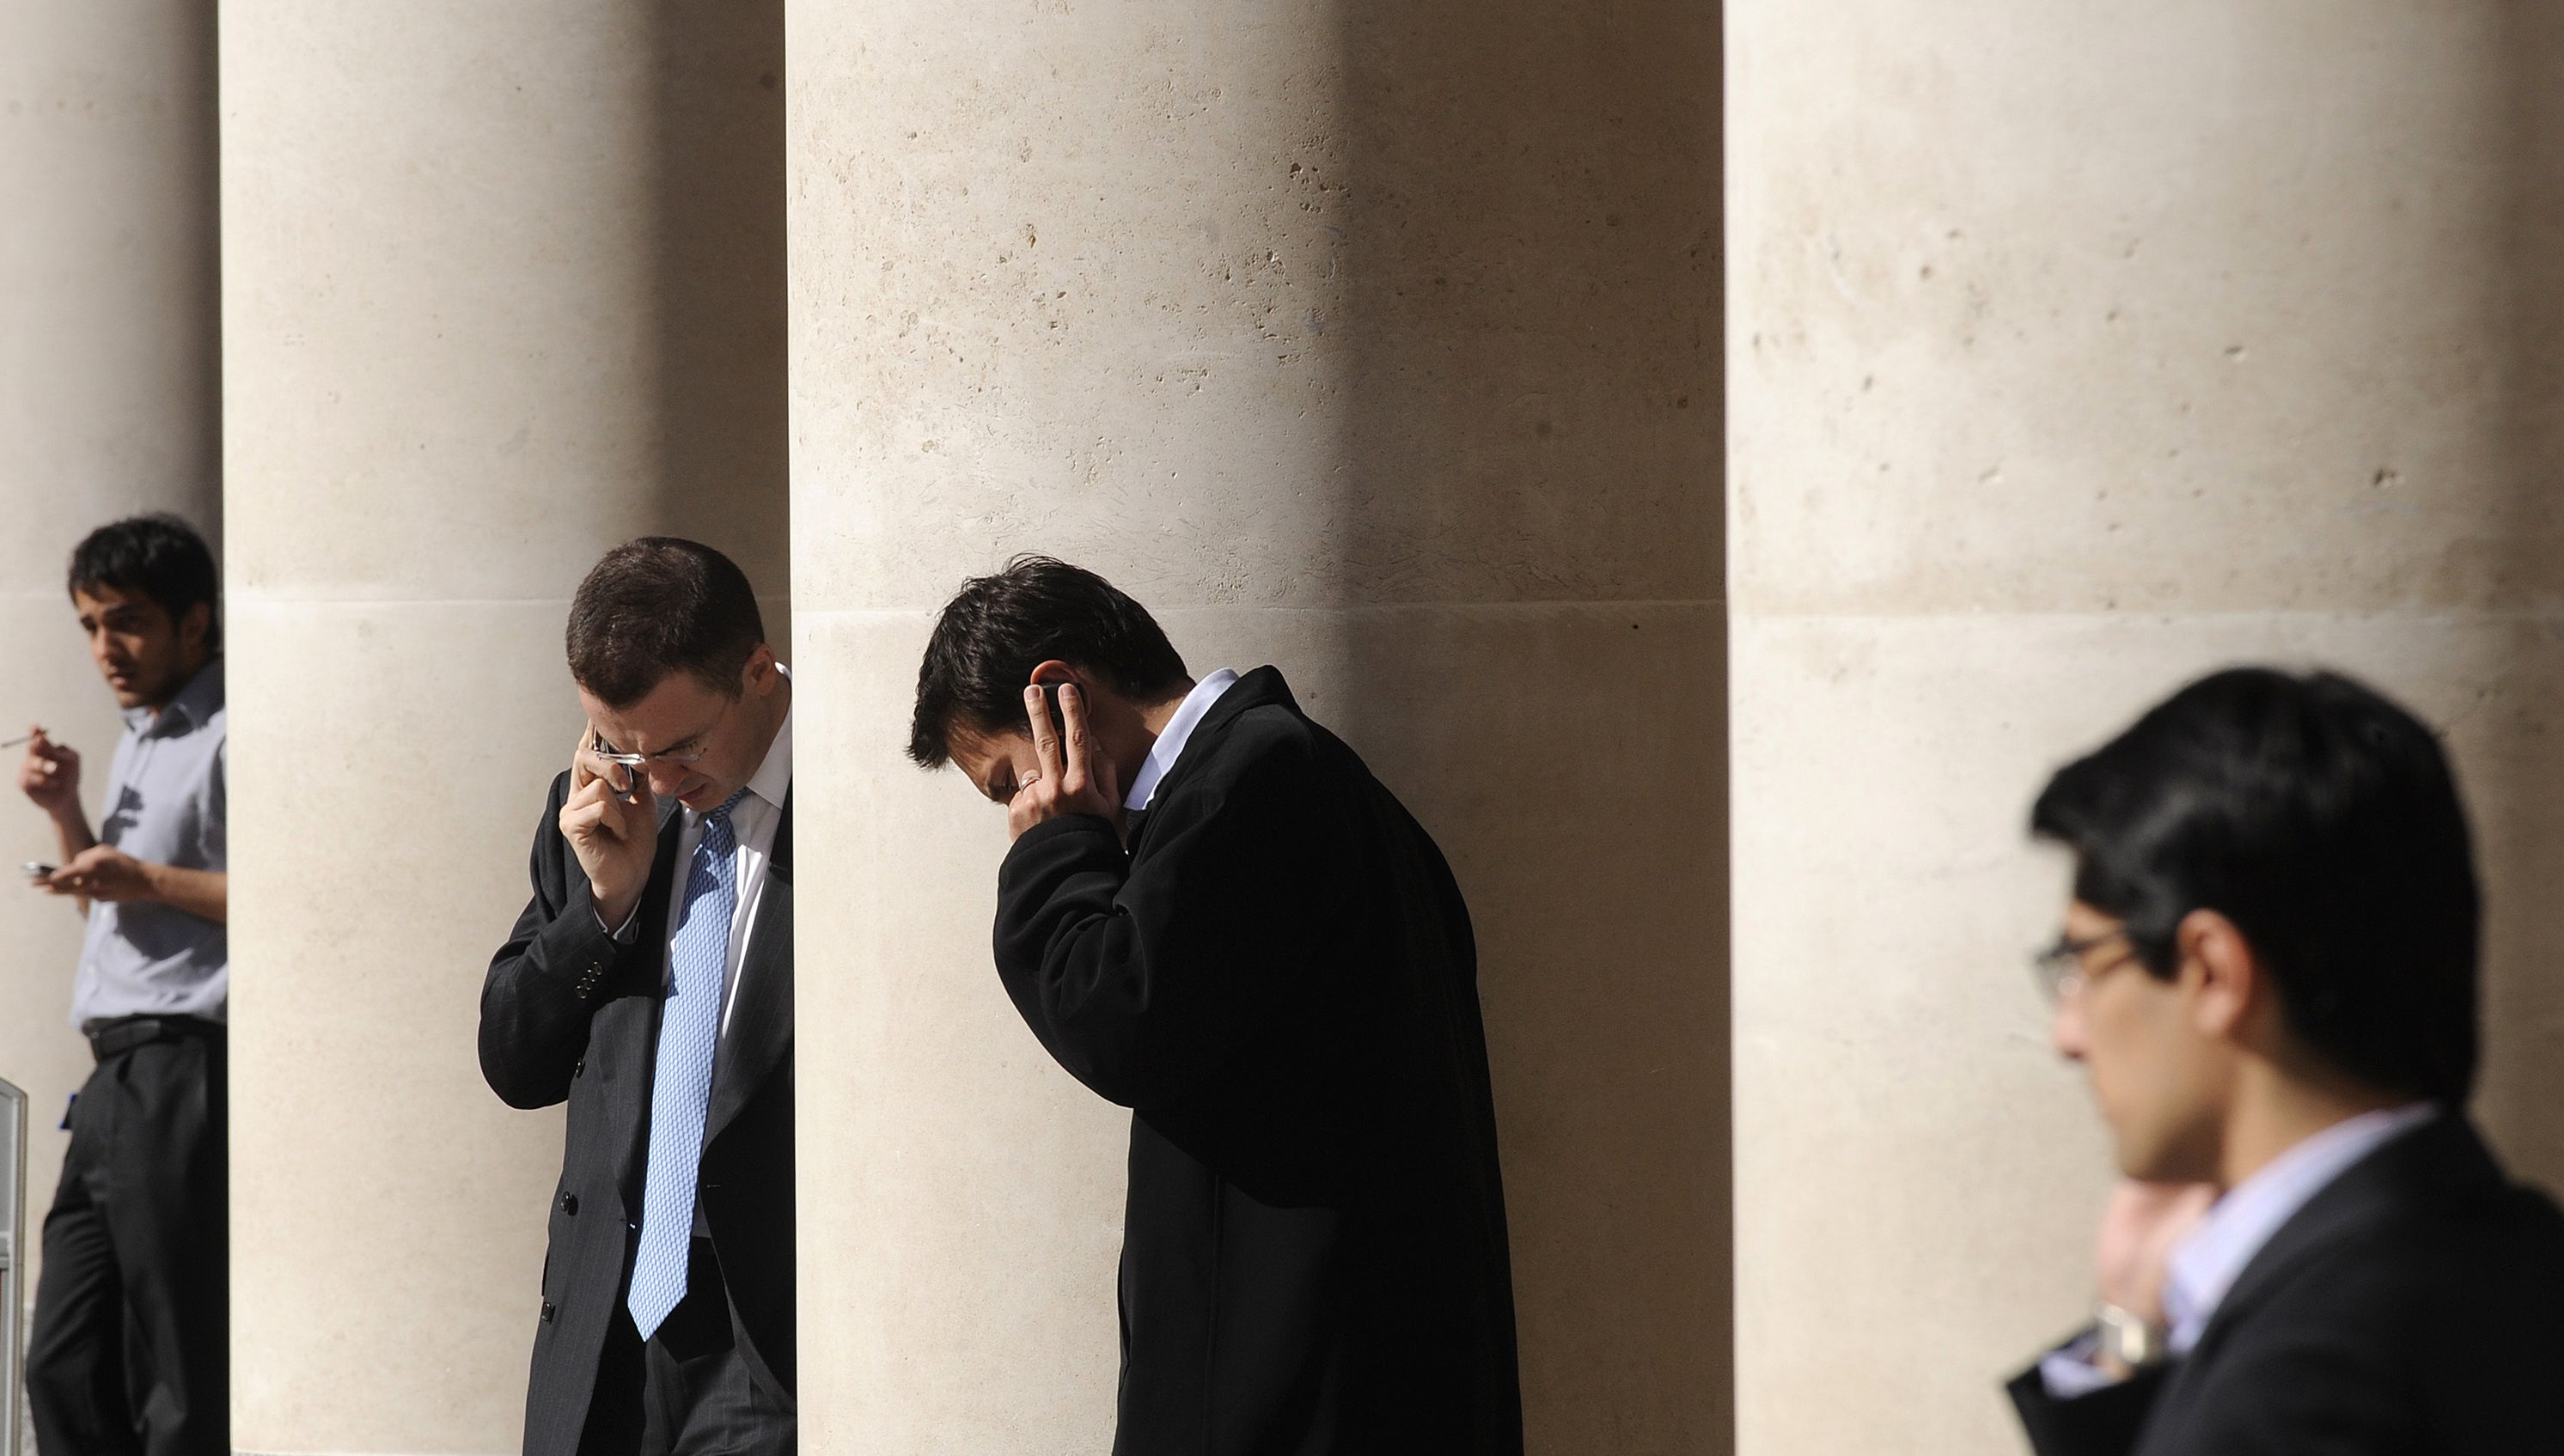 City workers make phone calls outside the London Stock Exchange in Paternoster Square in the City of London at lunchtime October 1, 2008. European policymakers have called on the U.S. Senate to approve a revised rescue plan aimed at tackling the worst financial crisis since the 1930s. REUTERS/Toby Melville